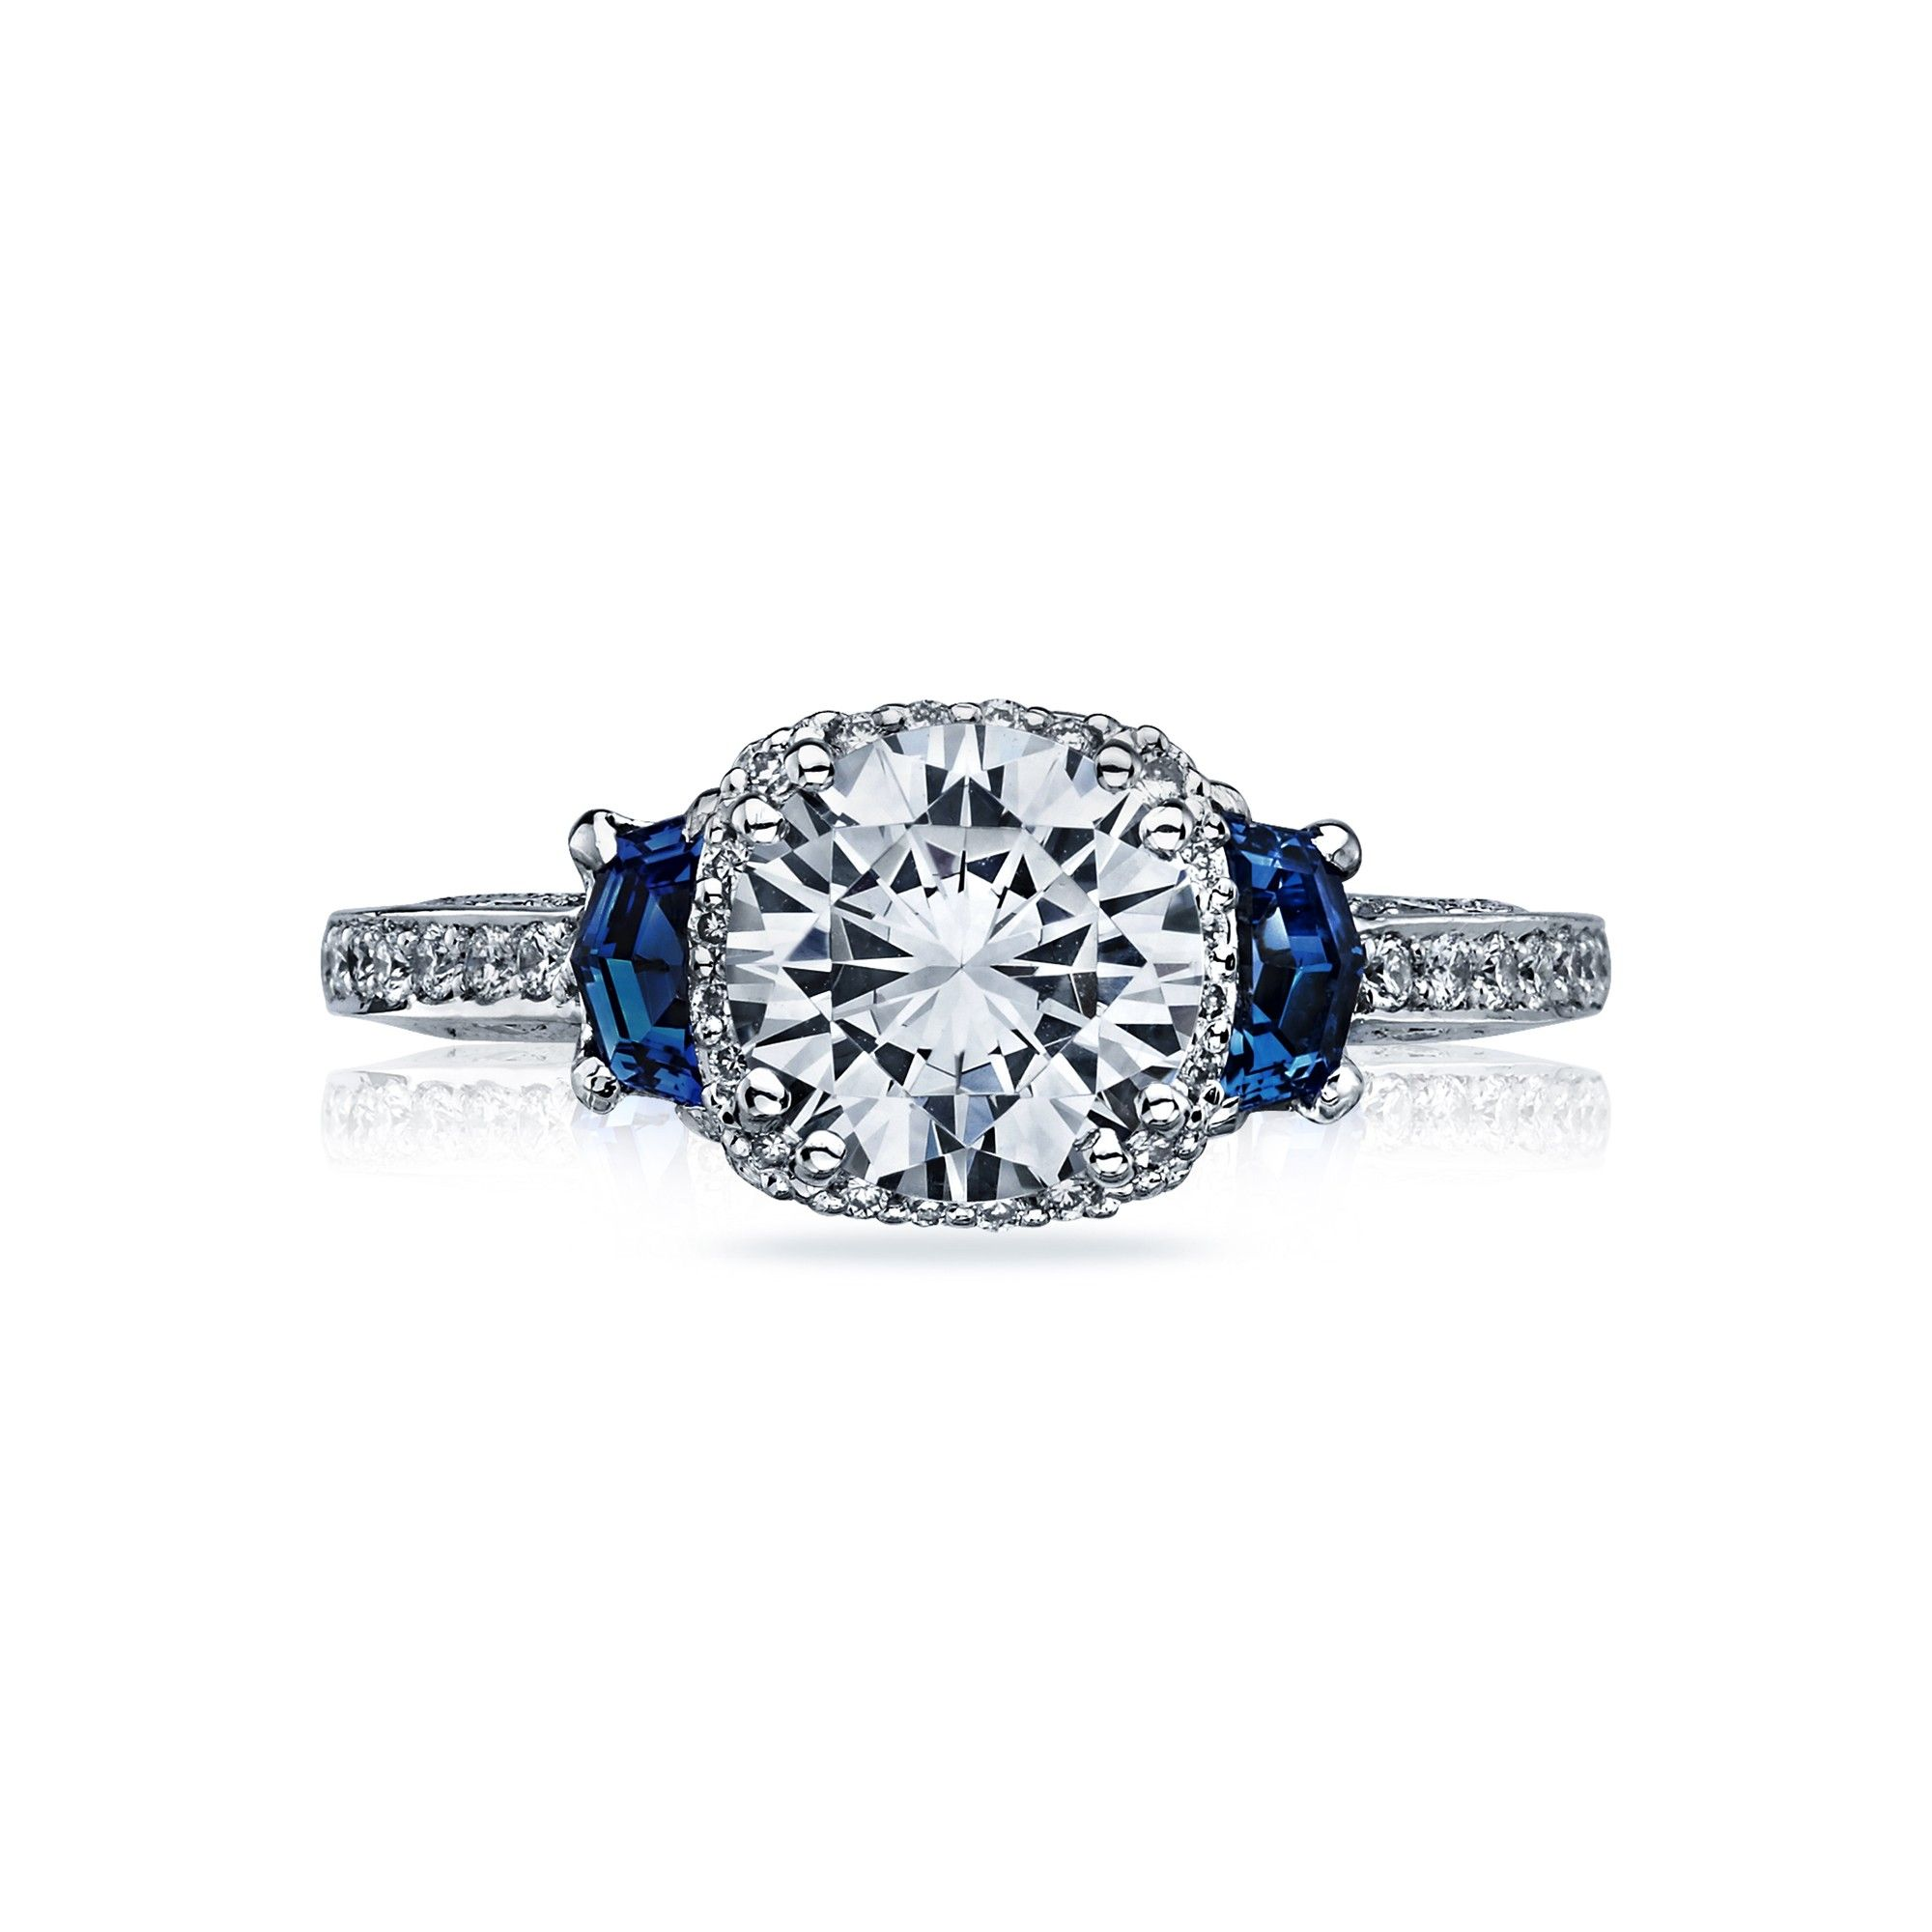 Tacori style no. 2628RDSP. A sweetly seductive style for the confident charmer. Architectural flair beautifies geometric cadillac-shaped sapphires. The depths of the blue sapphire set ablaze pave-set diamond detailing. A crown of intensifying diamonds around the center diamond make this ring incredibly special.